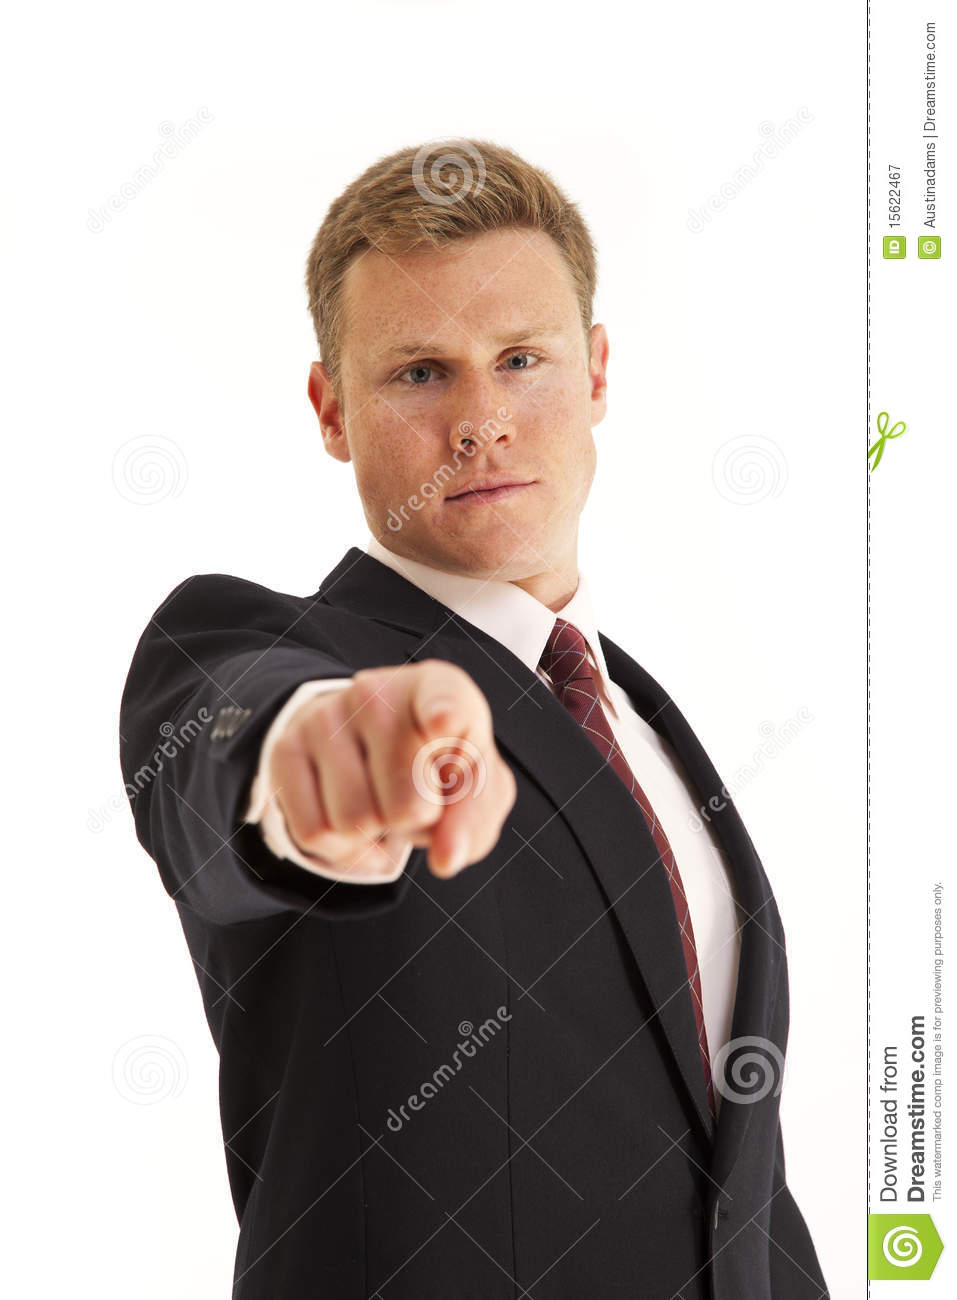 Person Pointing Finger Pointing finger at camera